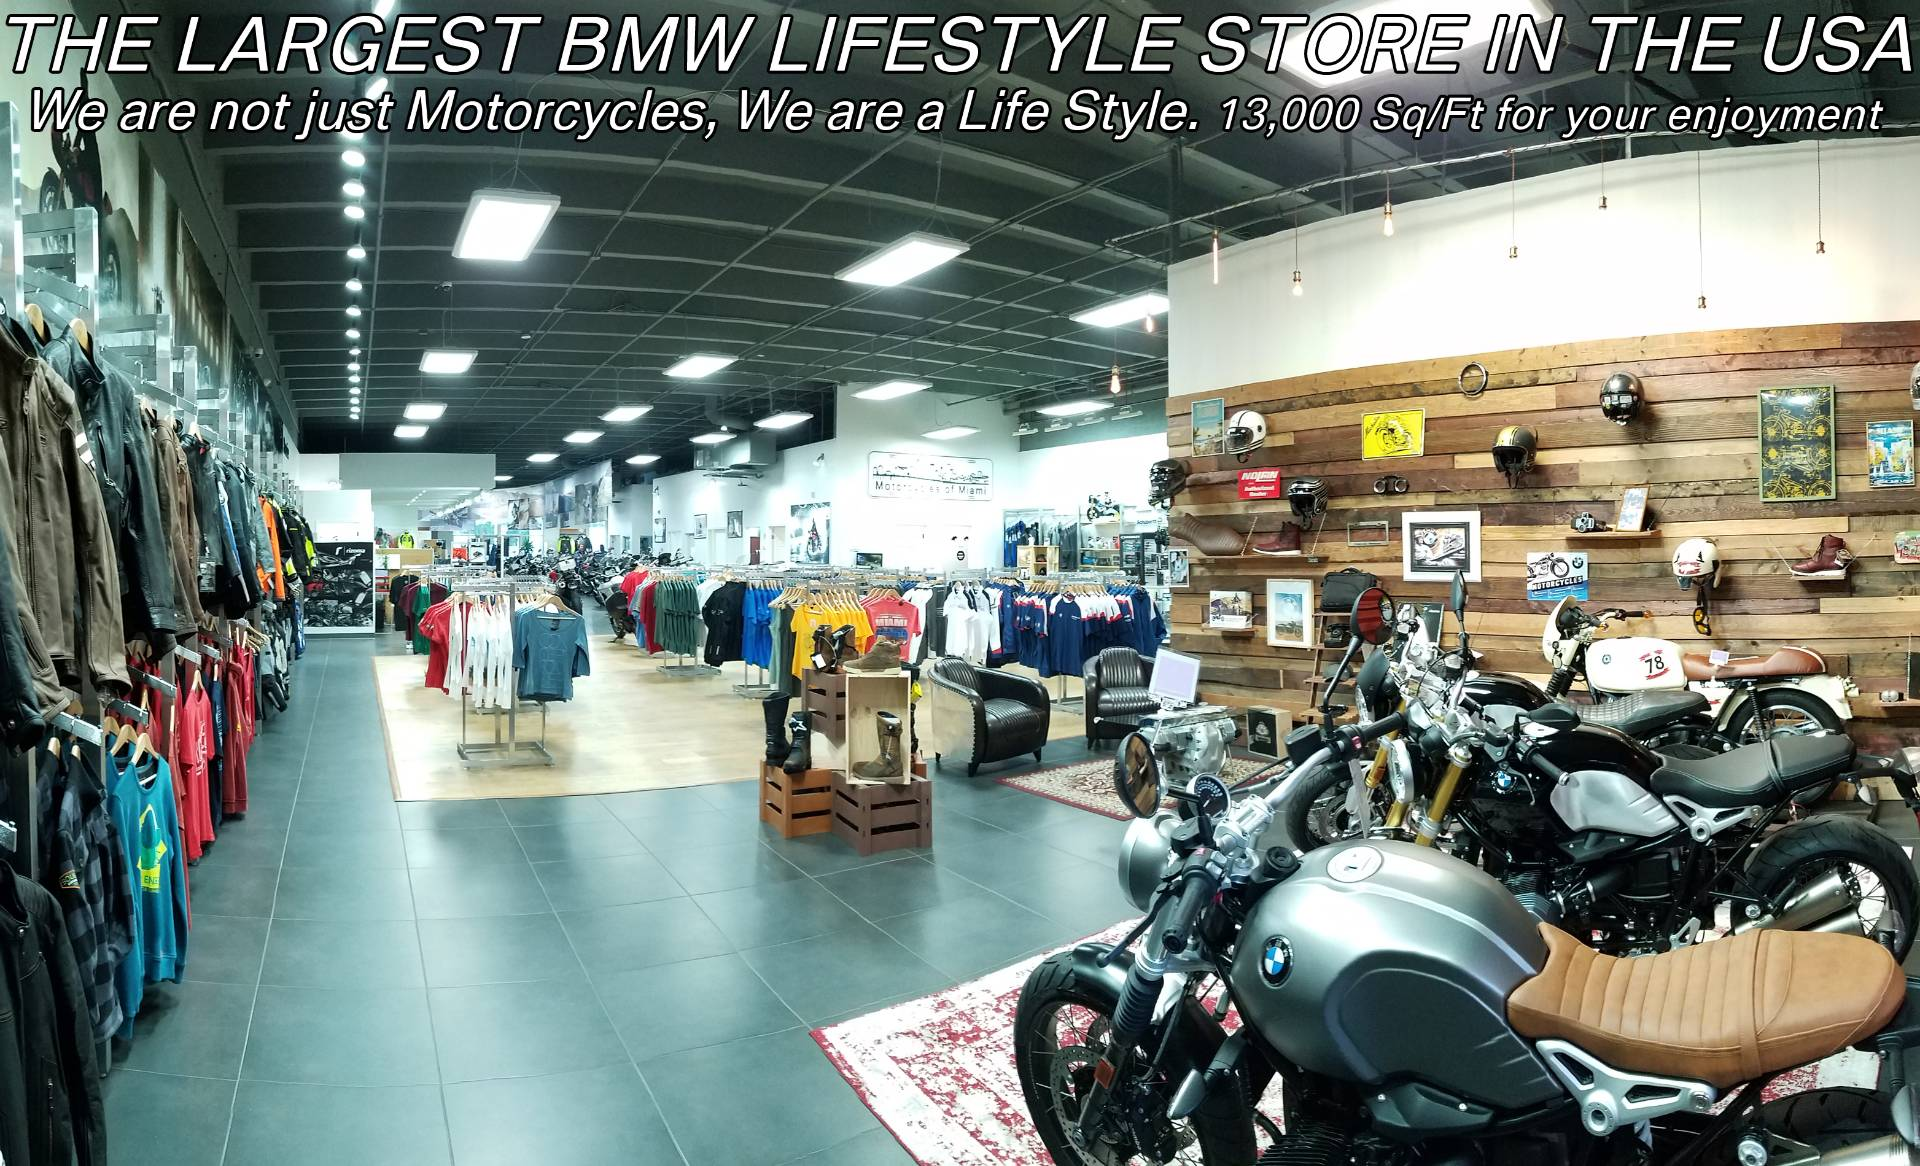 New 2019 BMW R 1250 GS for sale, New BMW for sale R 1250GS, new BMW 1250GS, R1250GS, GS. BMW Motorcycles of Miami, Motorcycles of Miami Motorcycles Miami